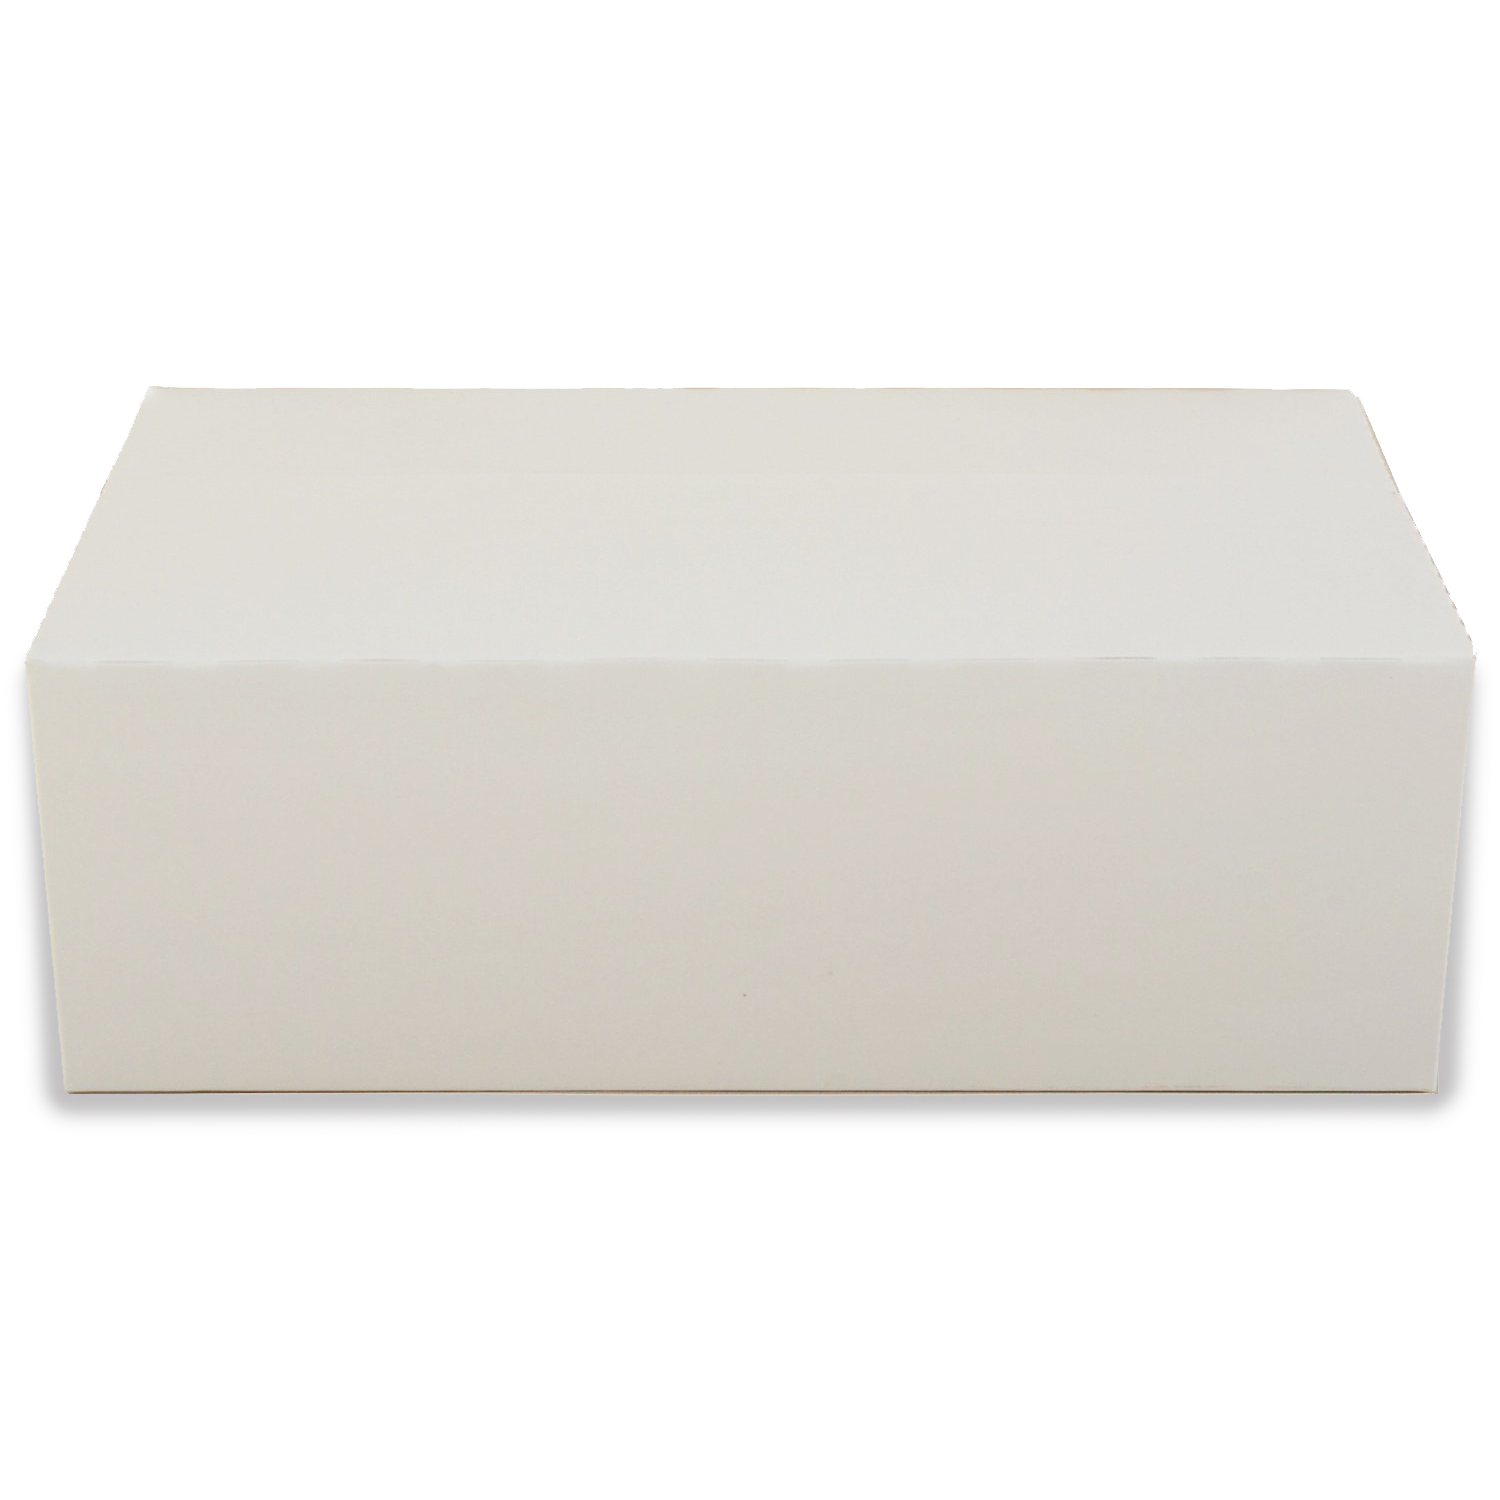 White Rectangular Paperboard Take Out Box Set Of 12